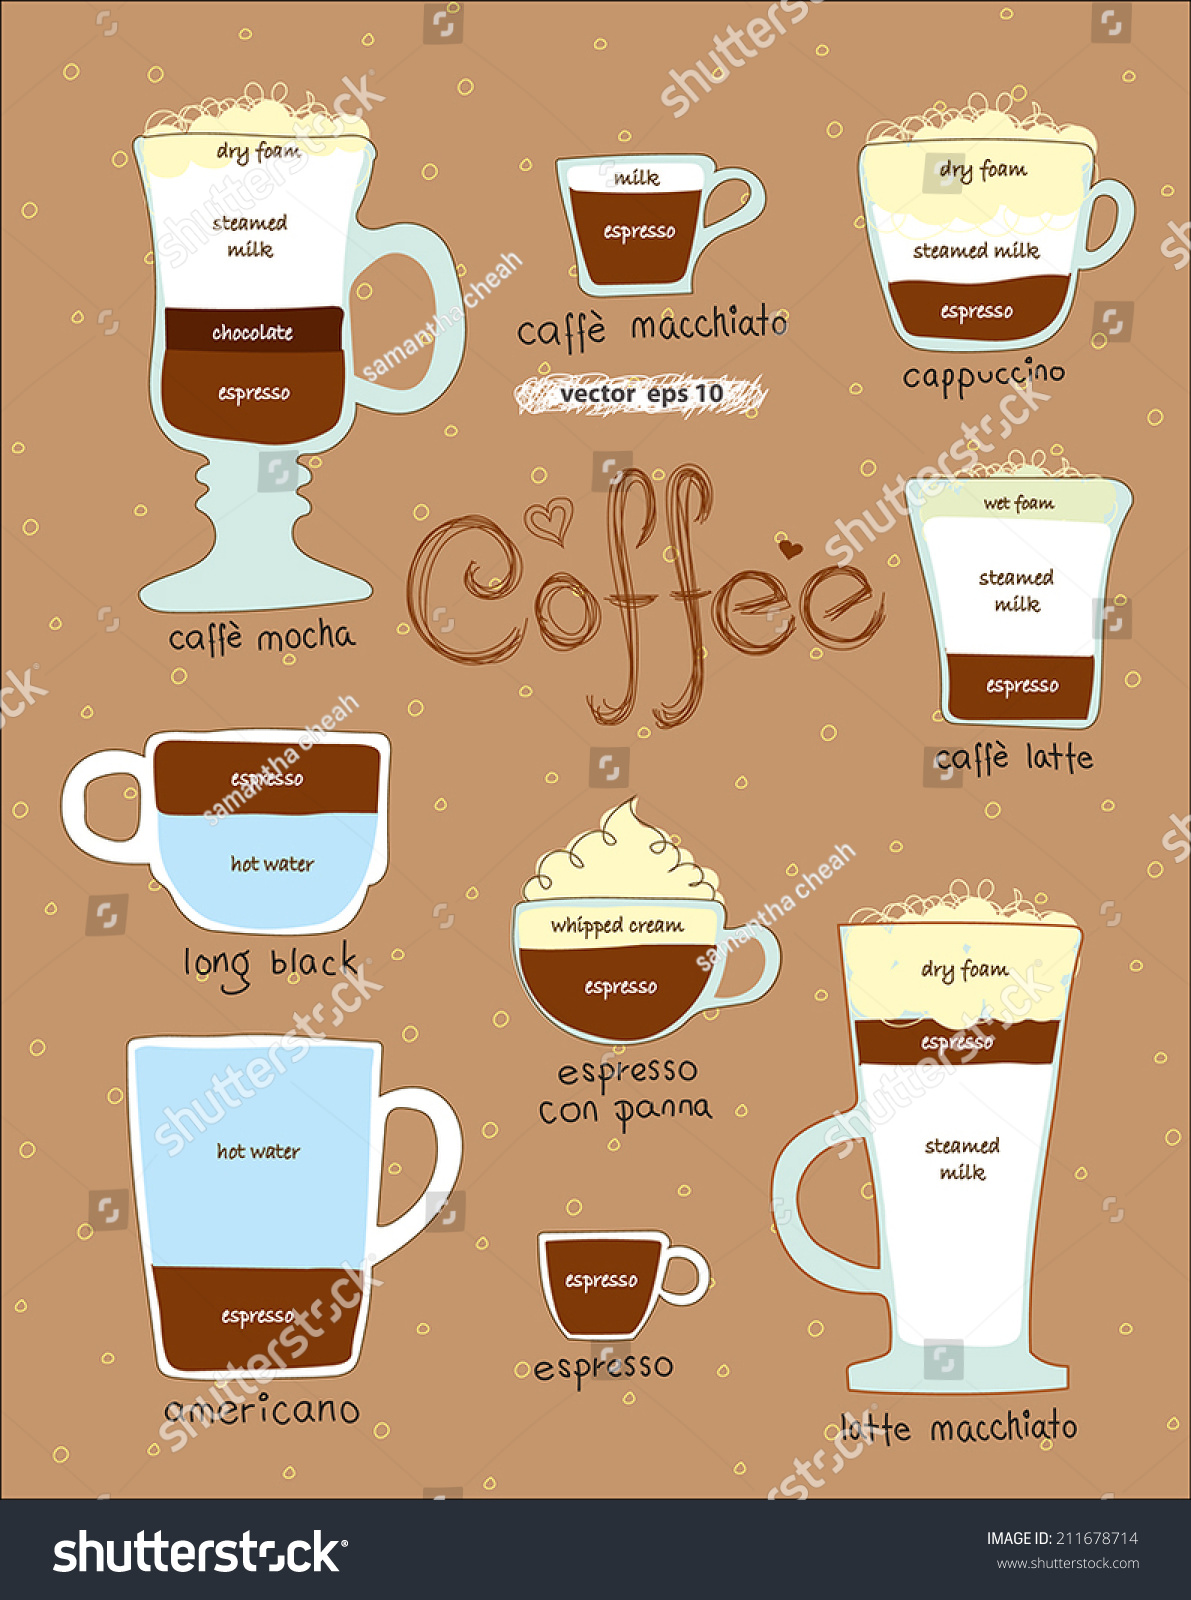 coffee composition diagram coffee database wiring diagram stock vector display chart of ingredient to made different types of coffee cute diagram drawing for